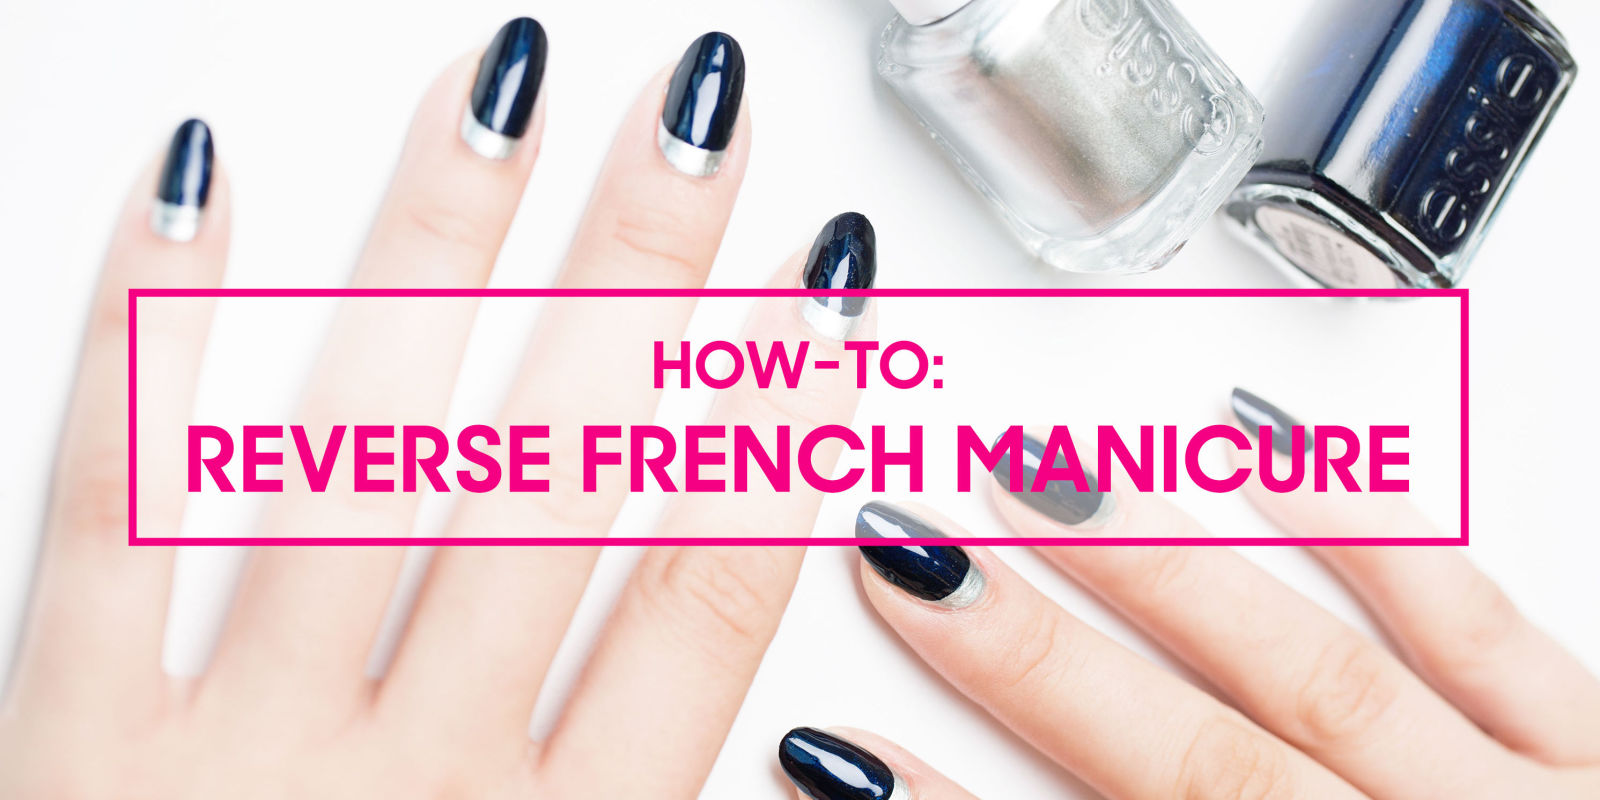 Reverse french manicure tutorial how to do a half moon manicure solutioingenieria Choice Image